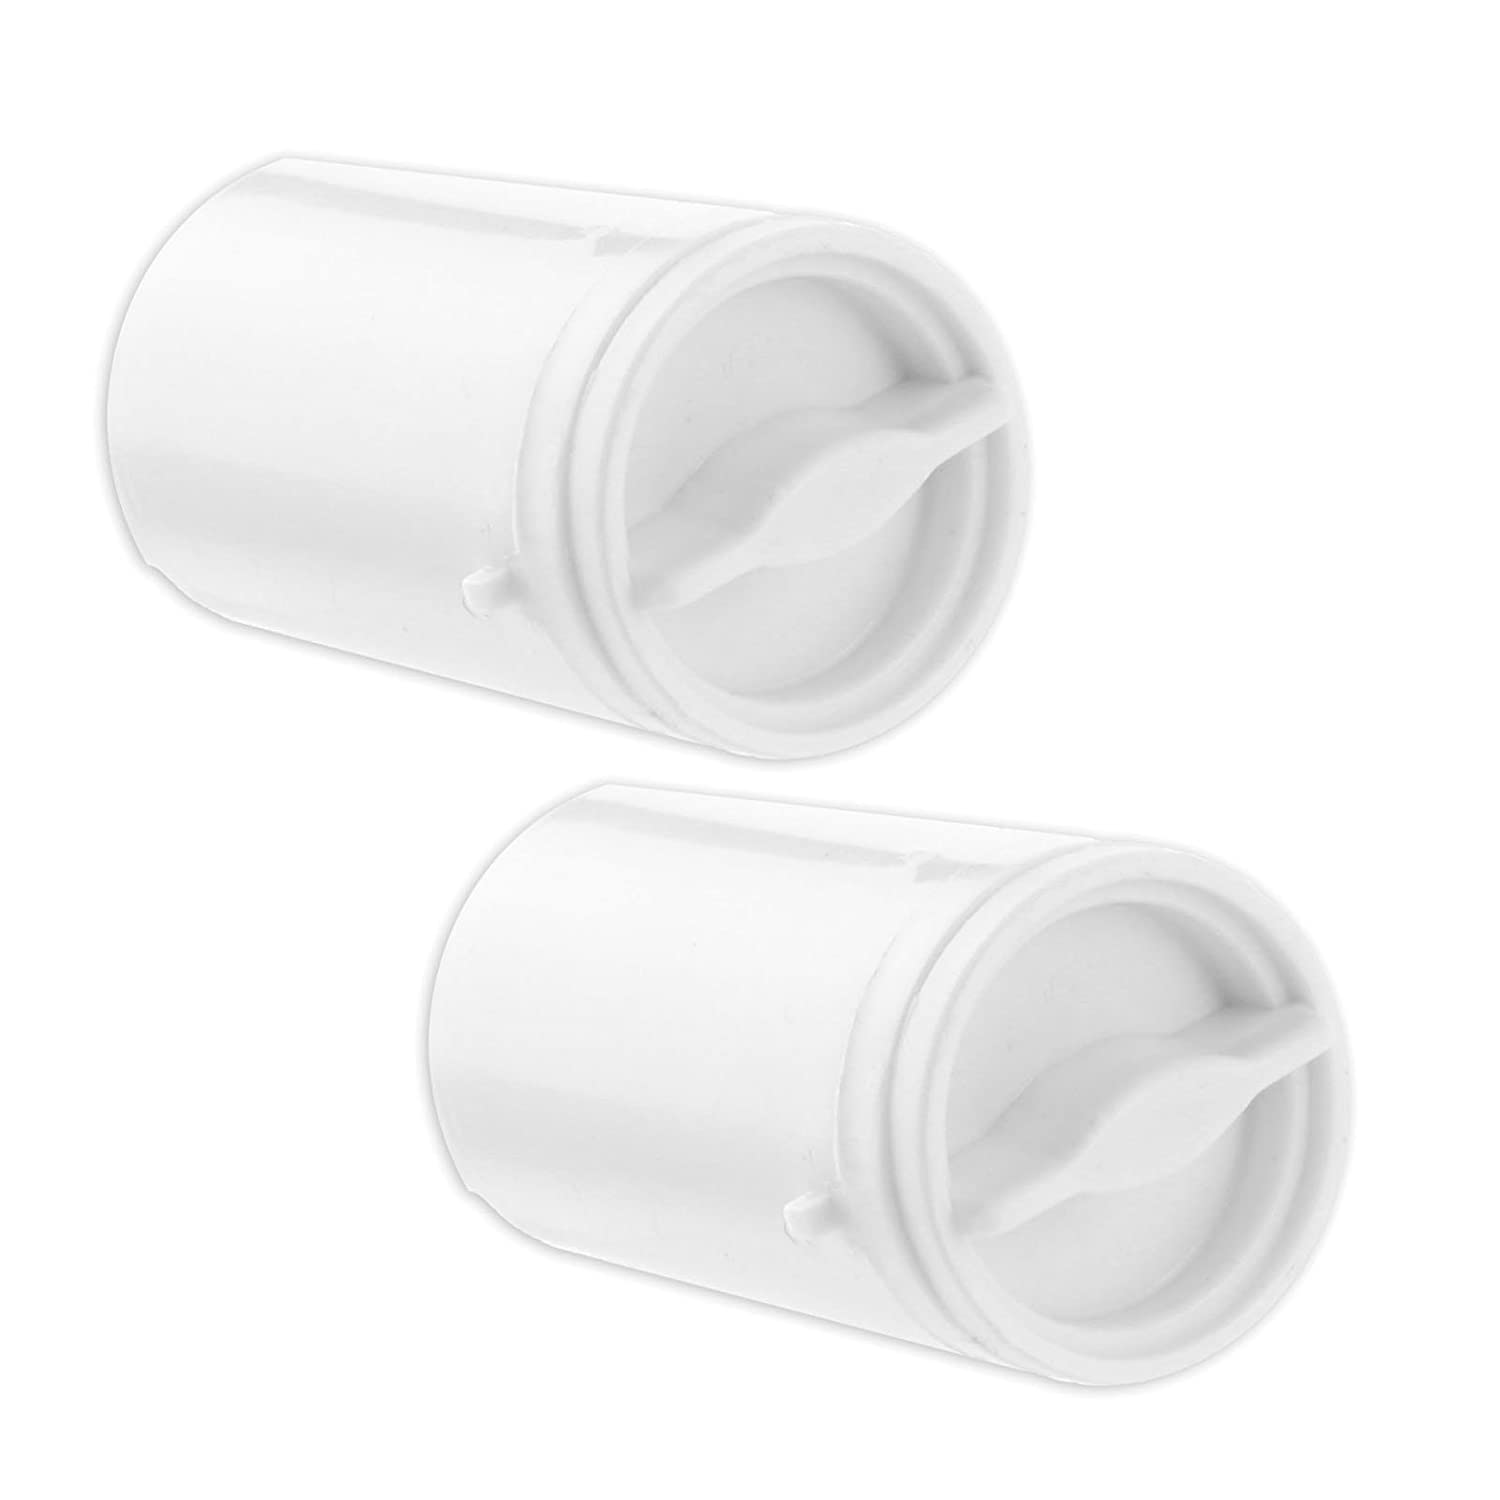 Genuine Swan SI4030N, SI4030GRN Steam Generator Iron Anti-Calc Filter (Pack of 2) Spares2go